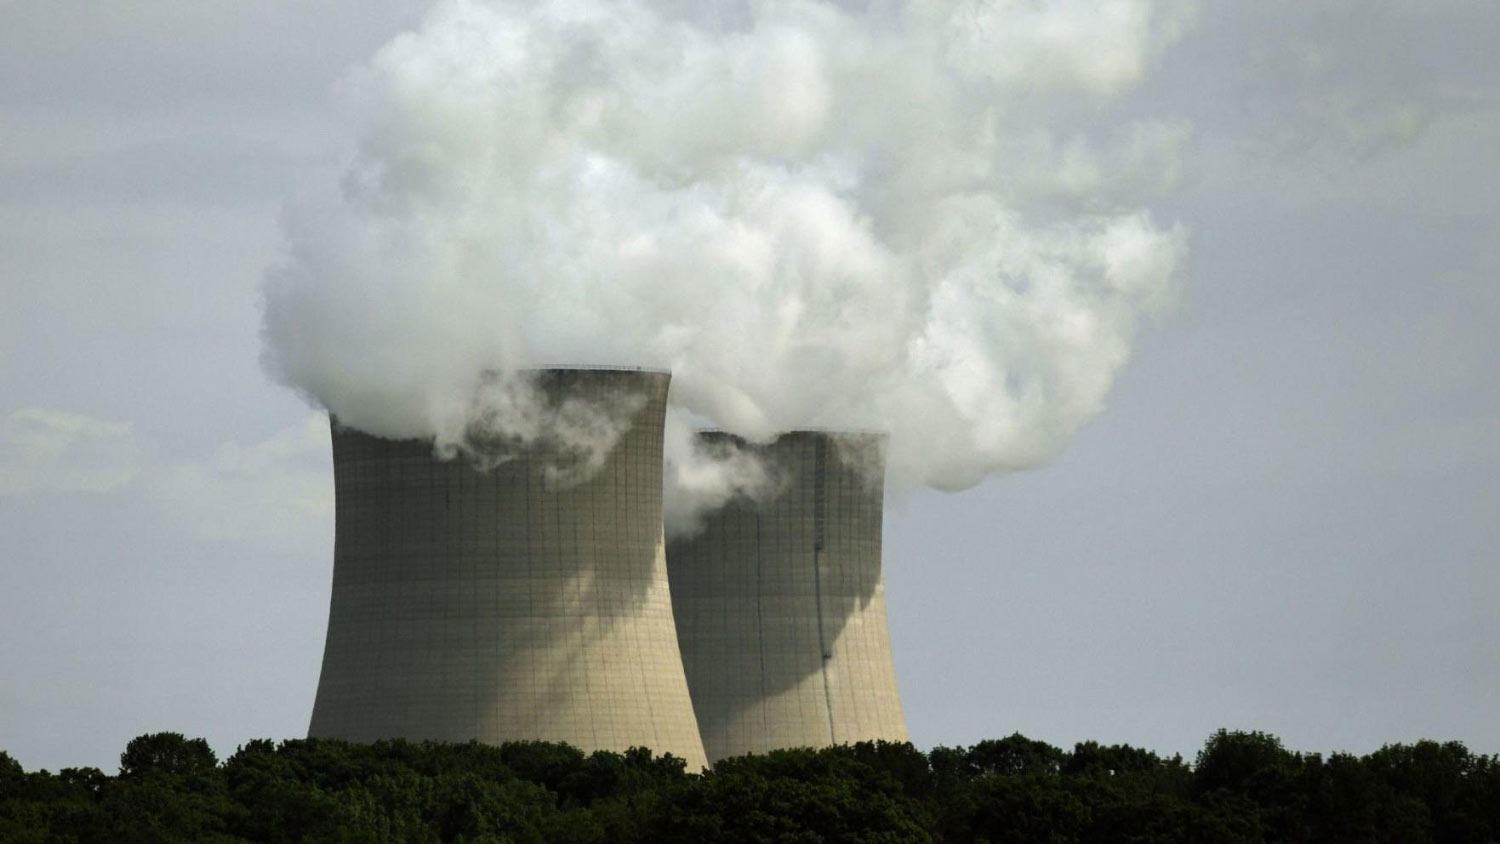 You Can't Compete with That! - Mining Bitcoins with Nuclear Power